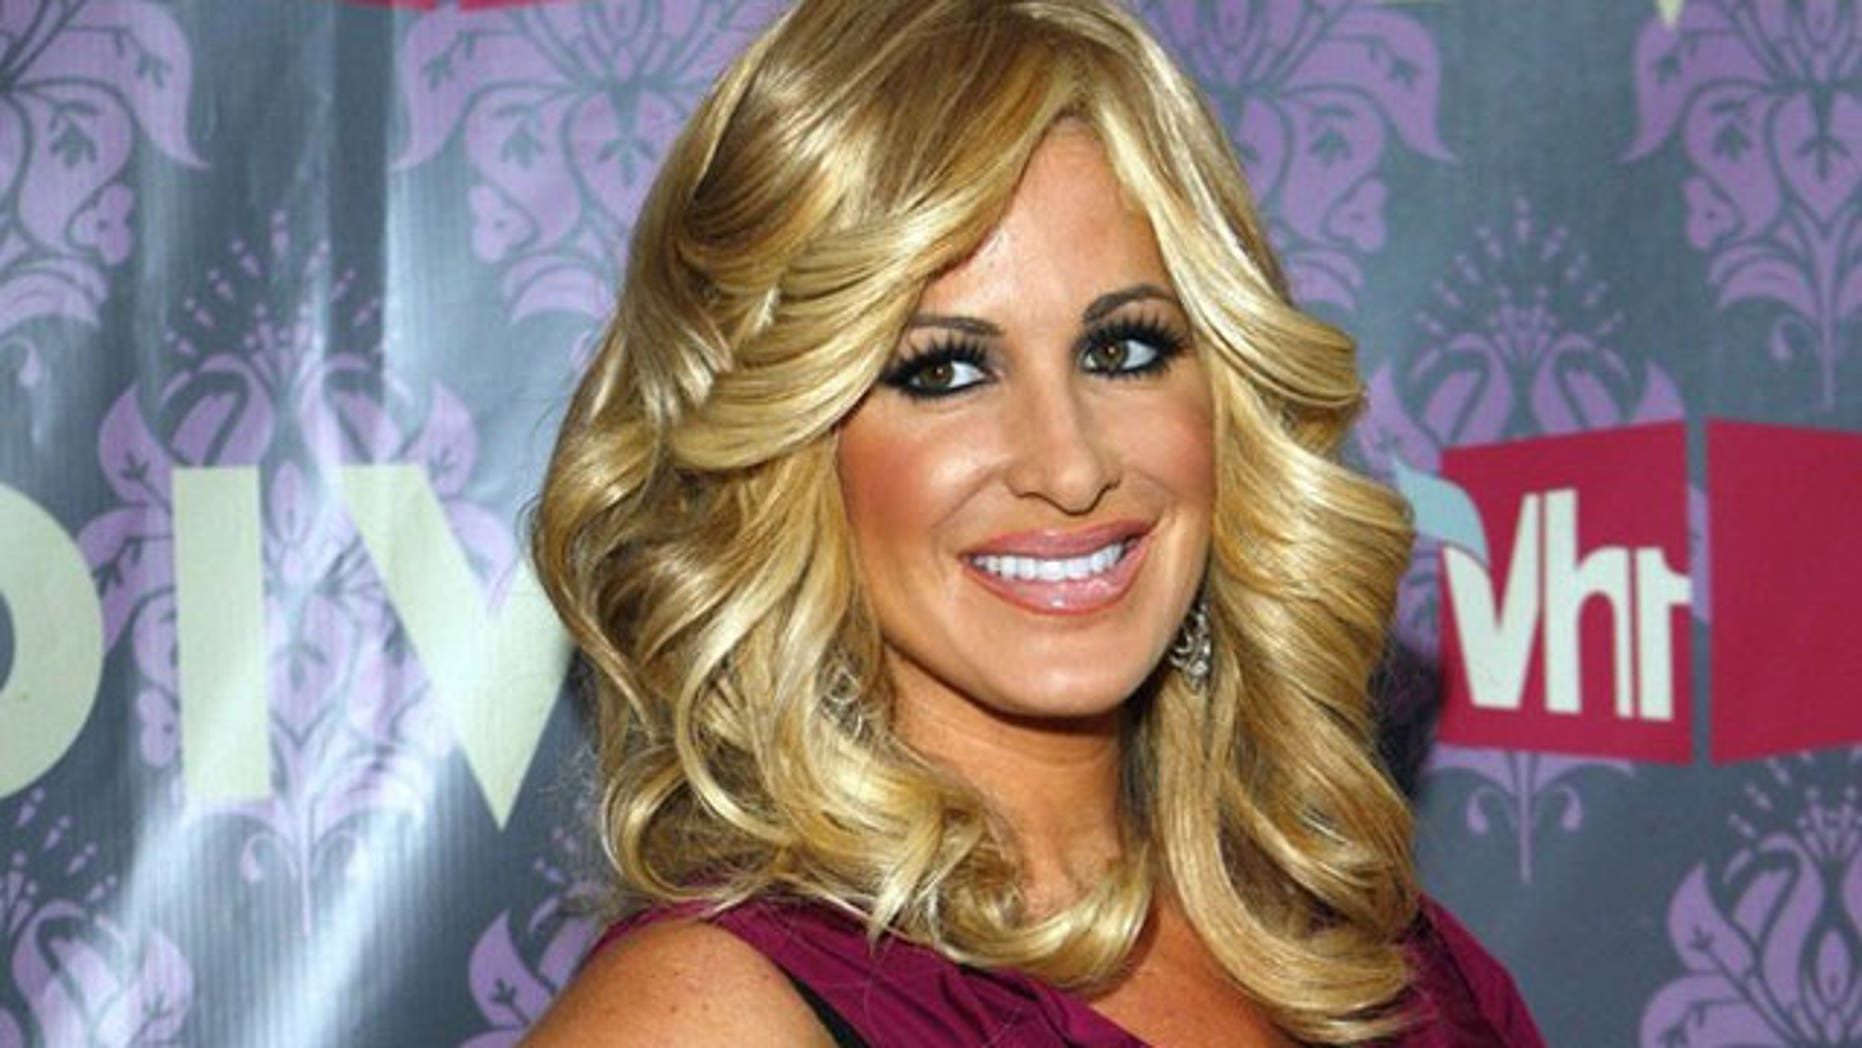 'Real Housewives of Atlanta' star Kim Zolciak (Reuters)